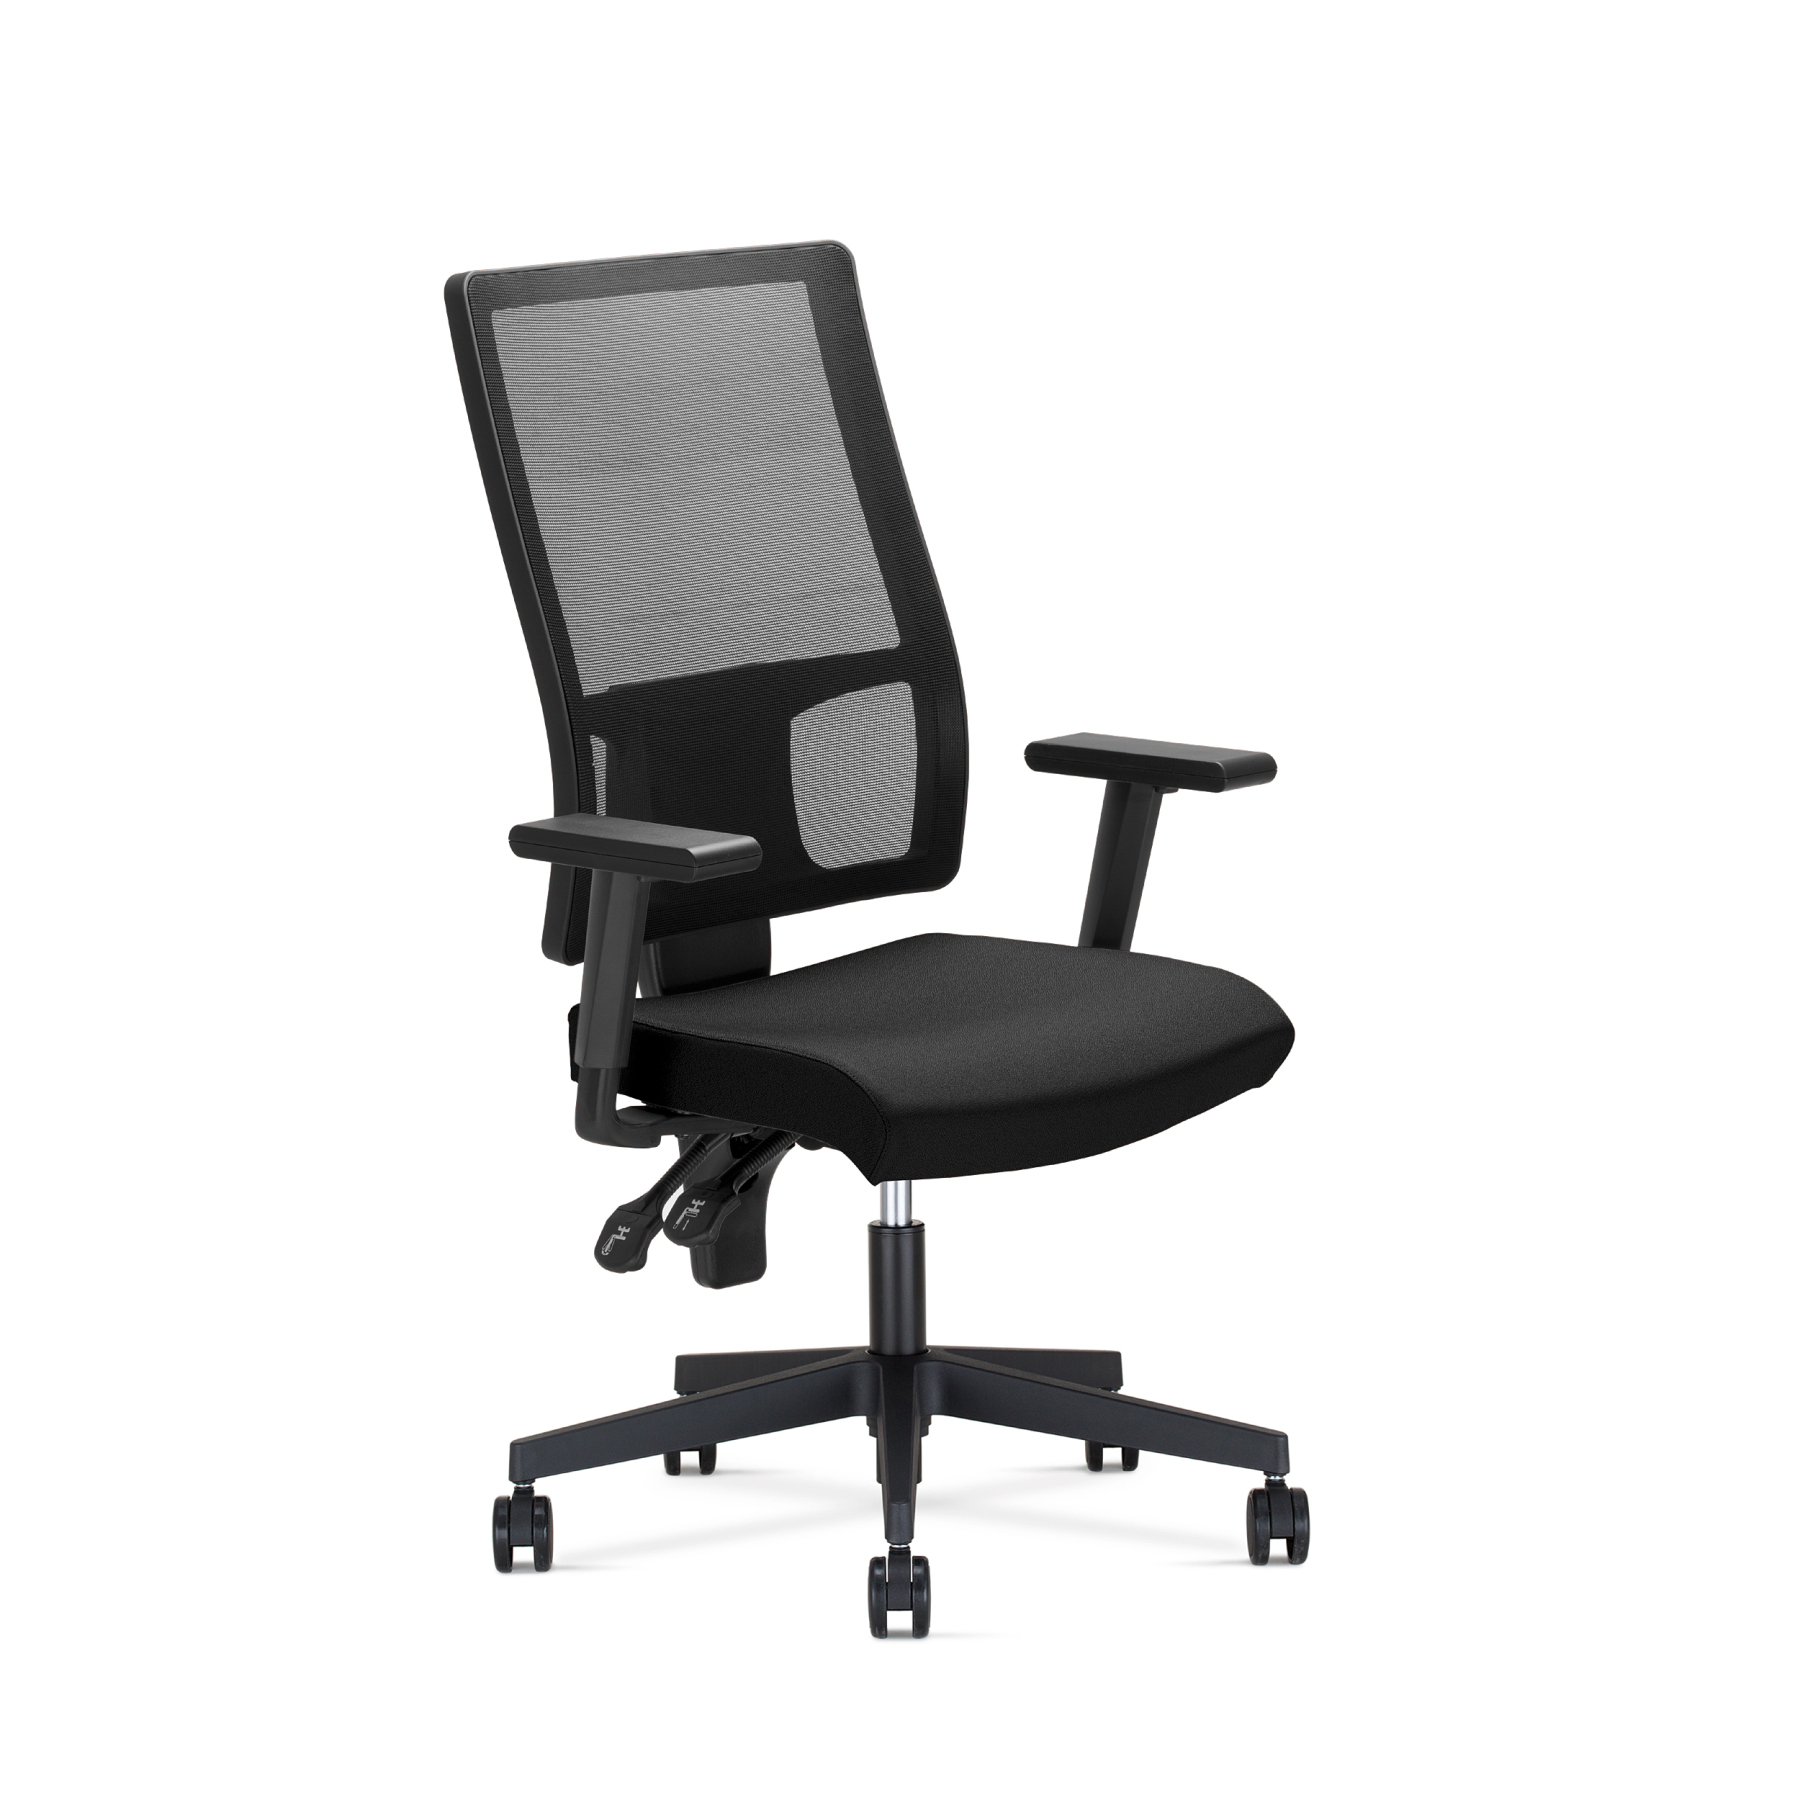 Ergonomic office chair with mechanism permanent contact  arms dimmable and lumbar reinforcement Backing mesh|  - title=